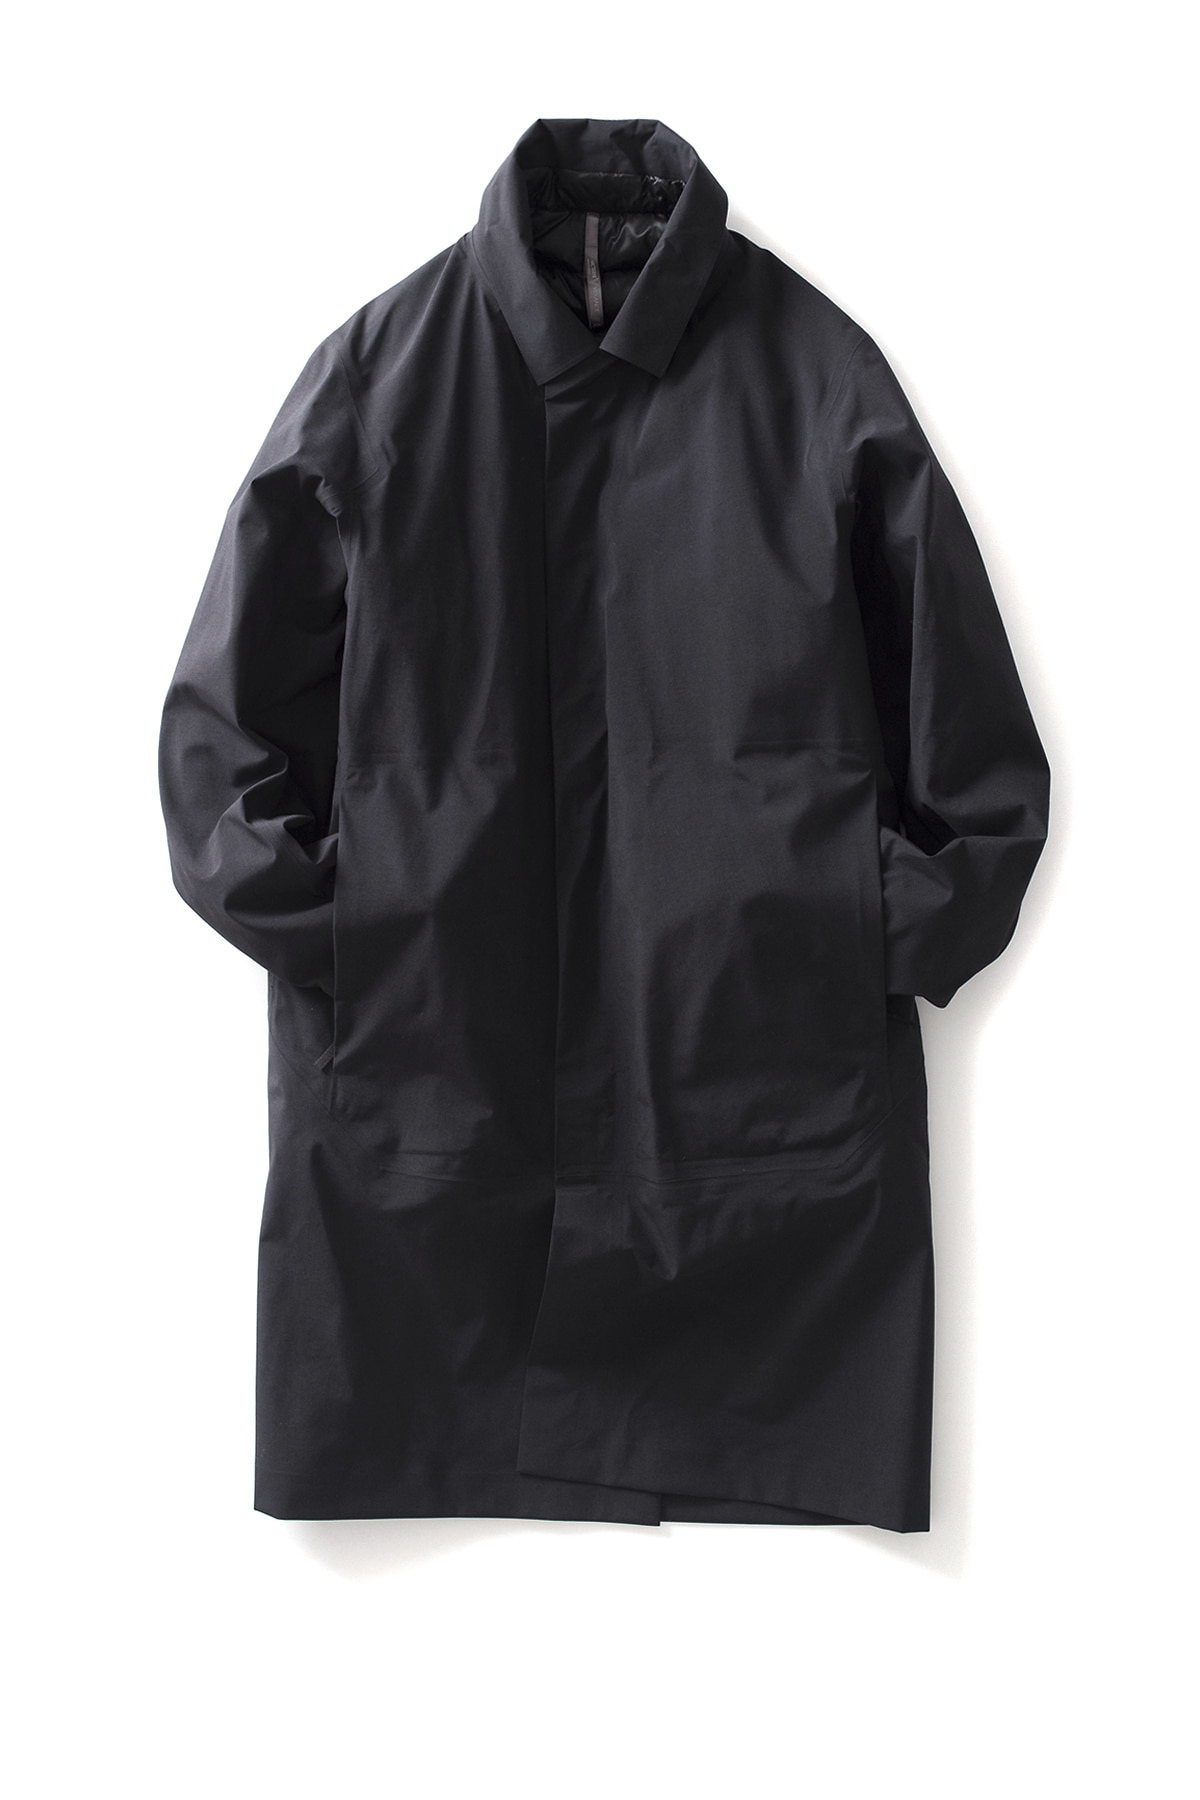 ARC'TERYX VEILANCE : GALVANIC DOWN COAT (Black)